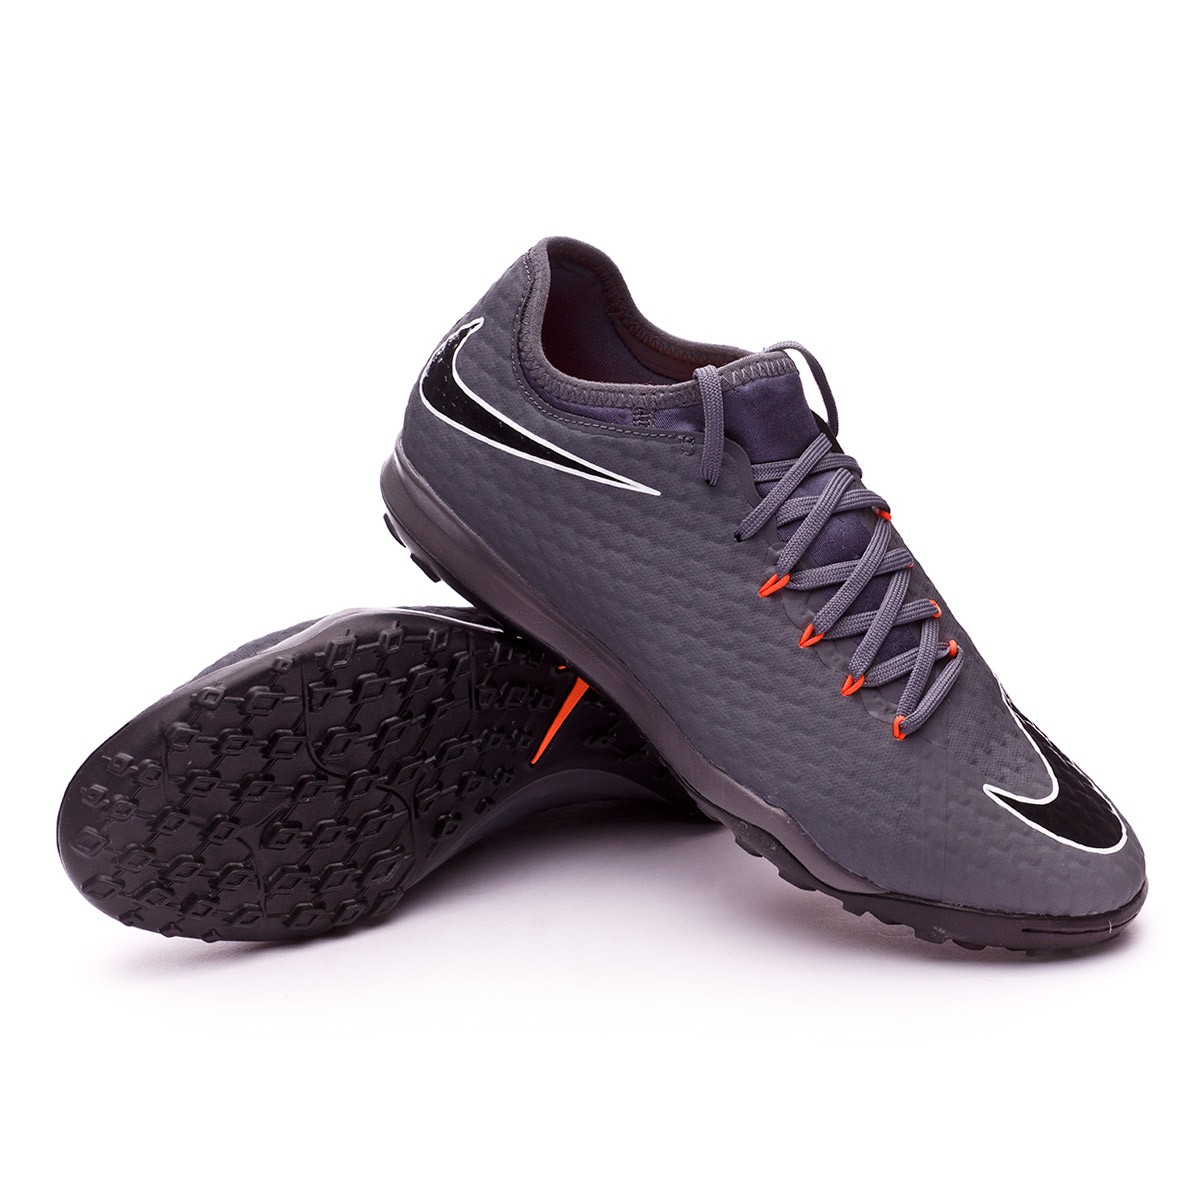 designer fashion f2fff c5cca Zapatilla Hypervenom Zoom PhantomX III Pro Turf Dark grey-Total orange-White